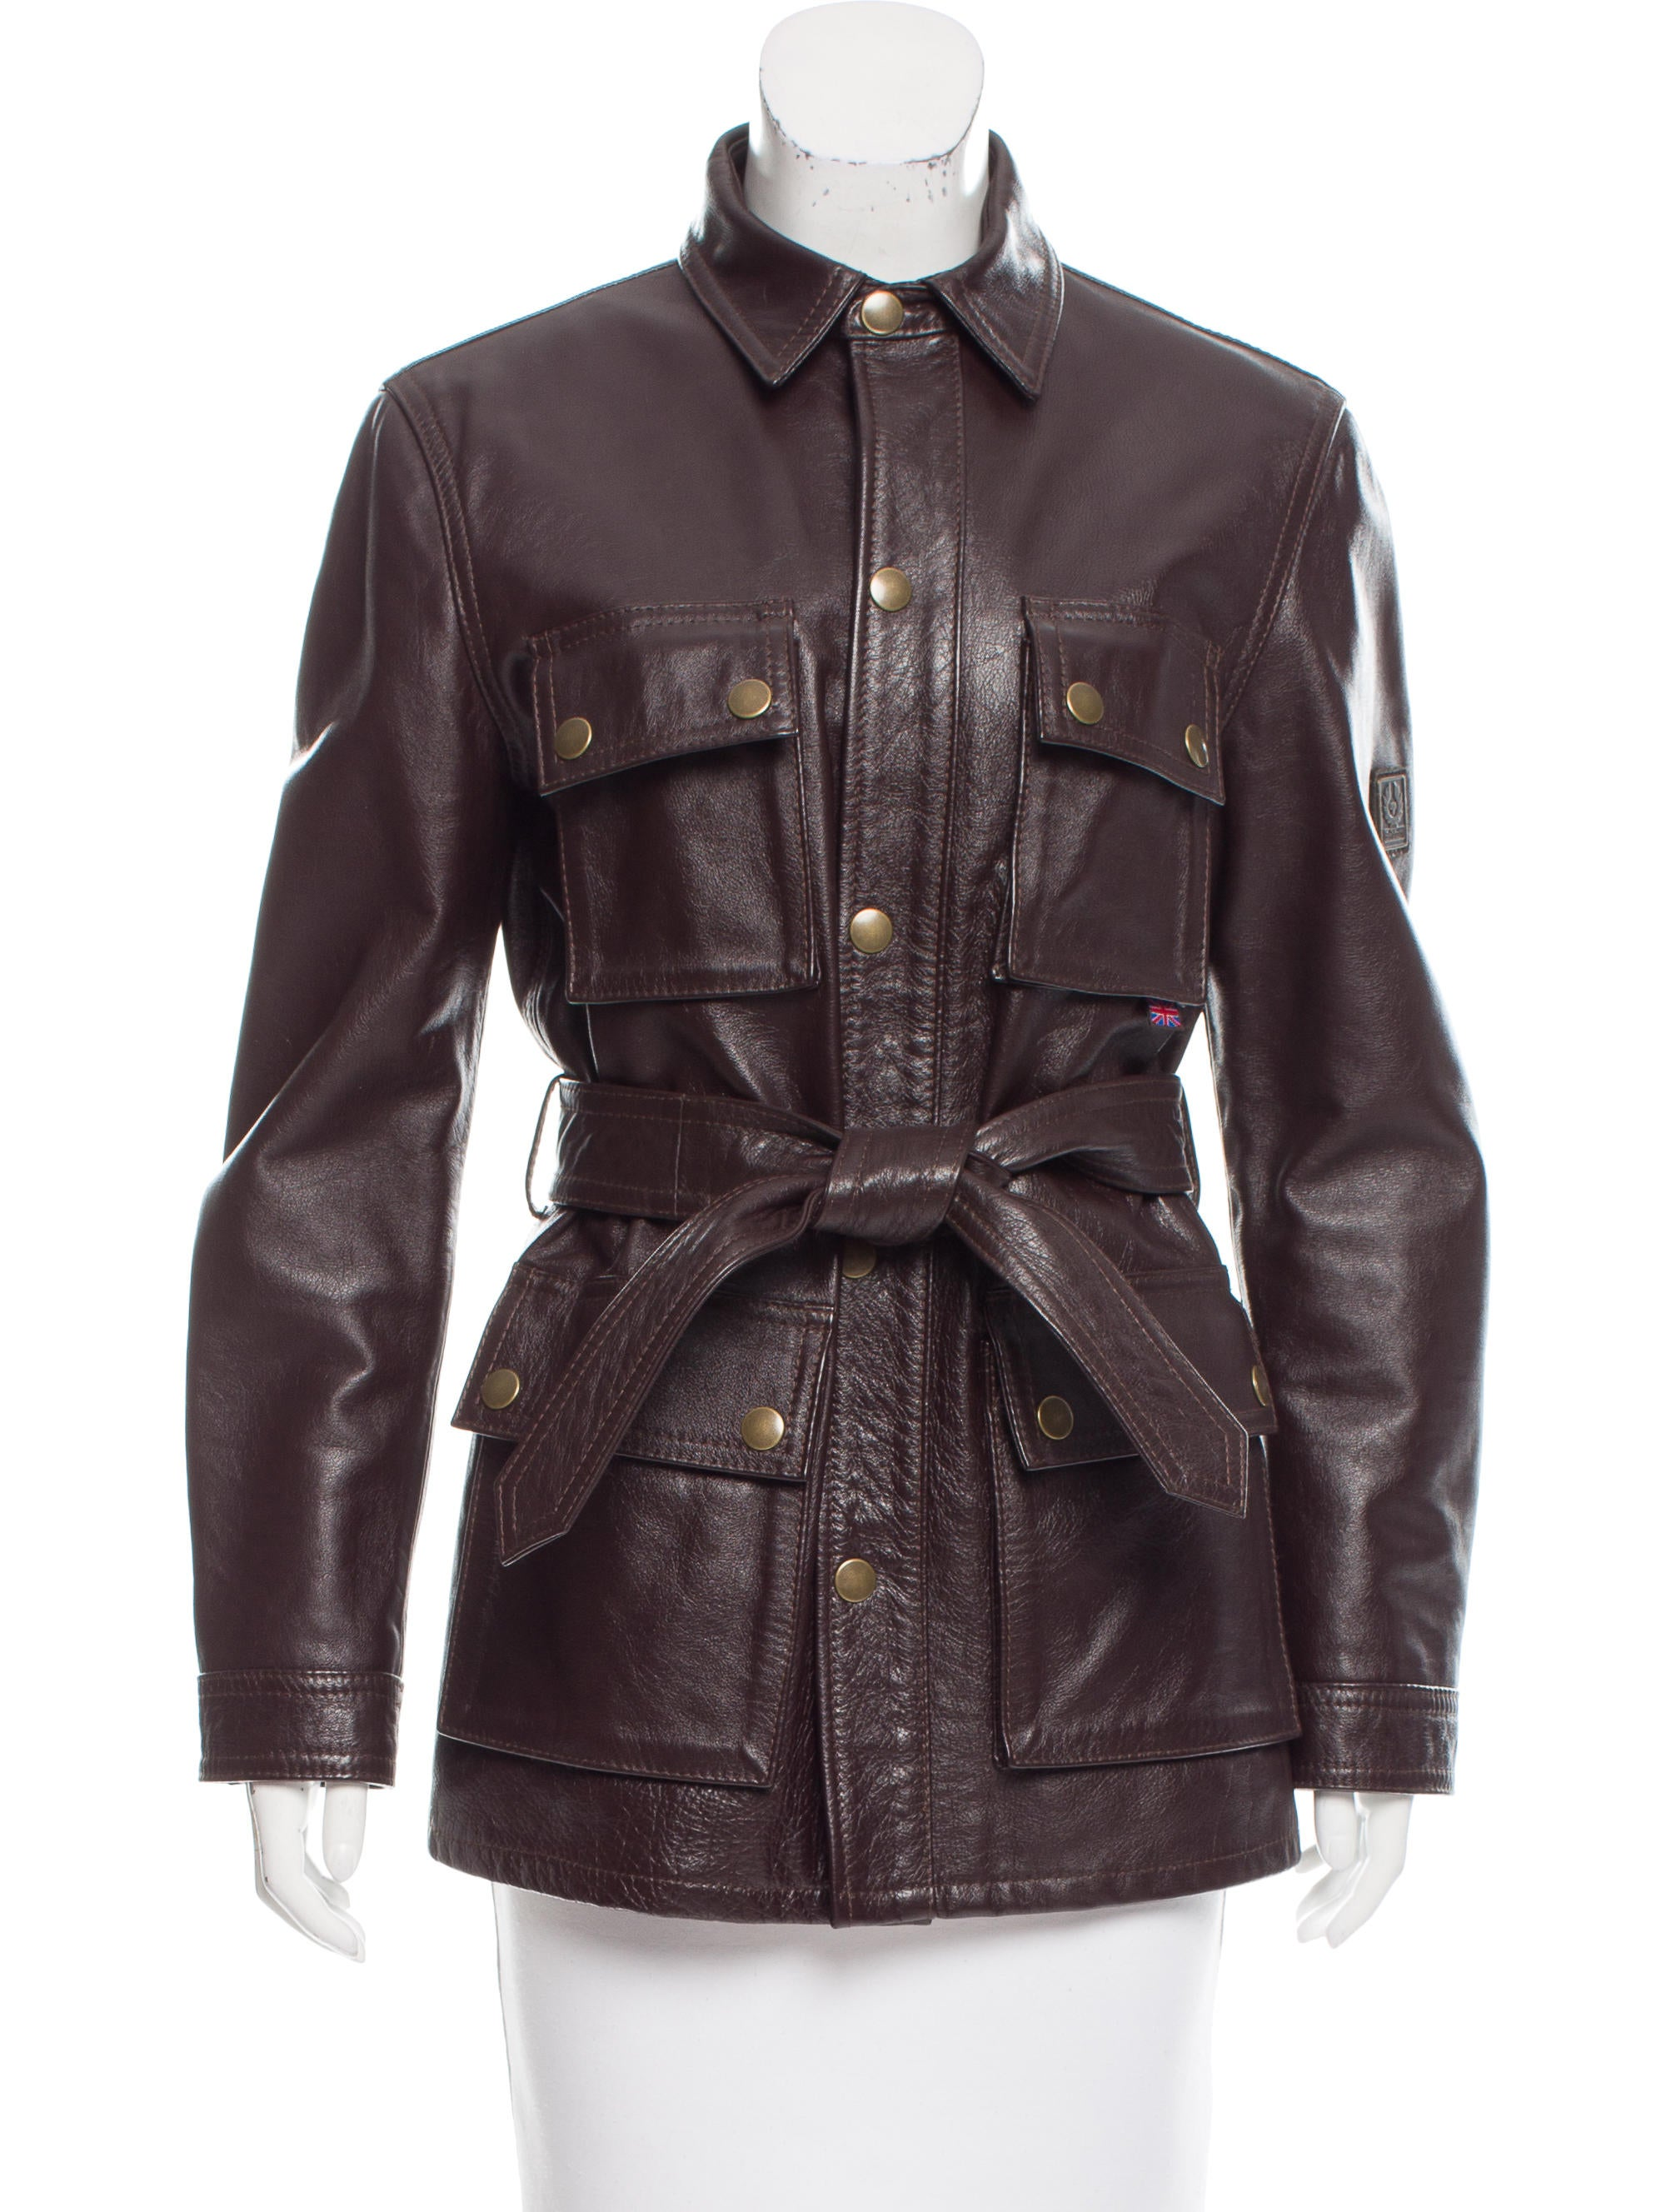 Find great deals on eBay for hoodie leather jacket. Shop with confidence.